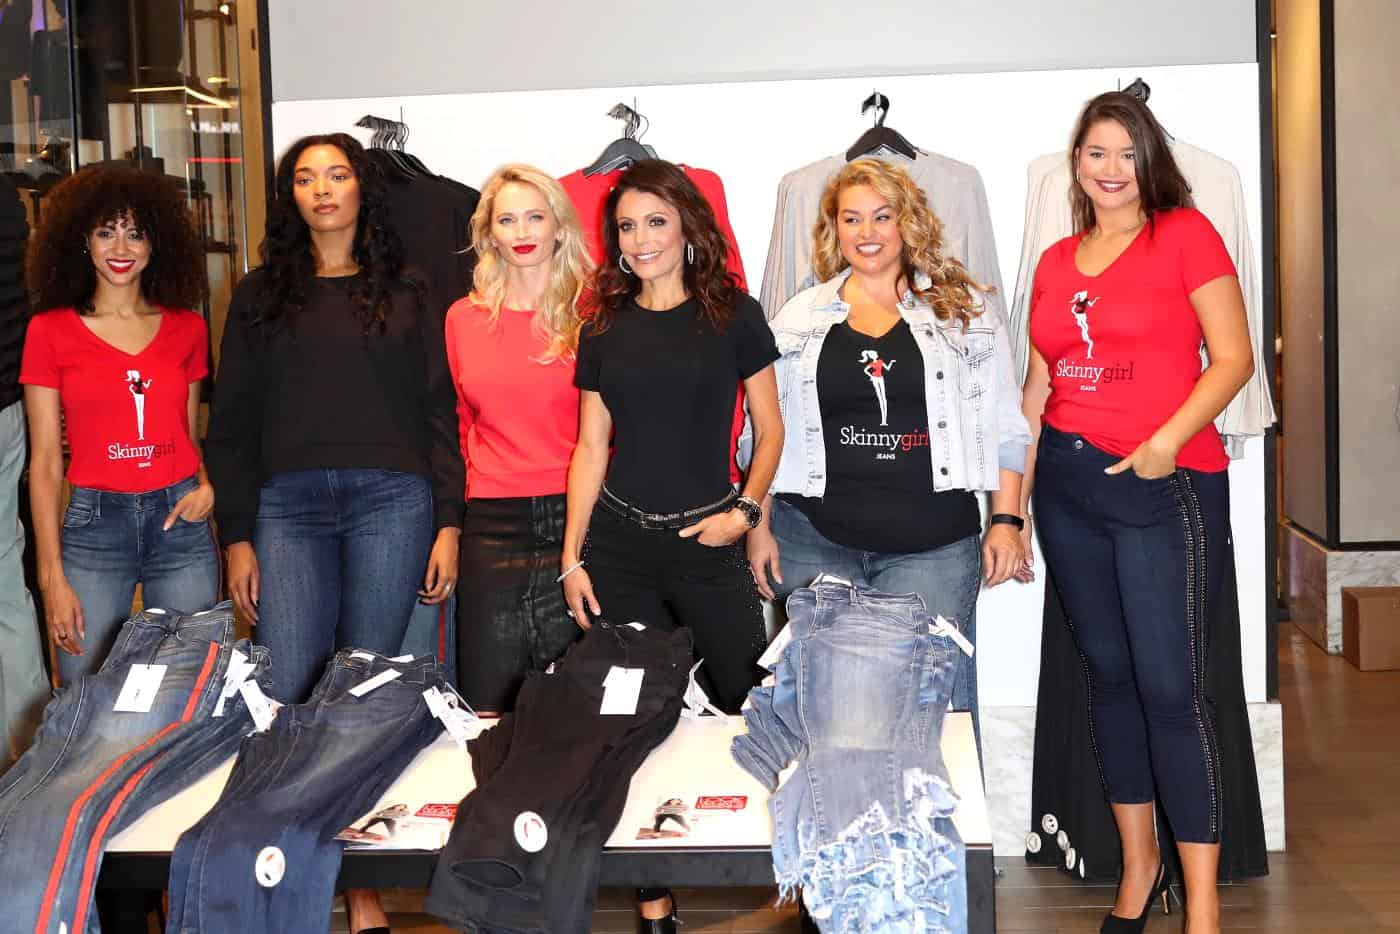 Bethenny Frankel Skinngirl Jeans Launch